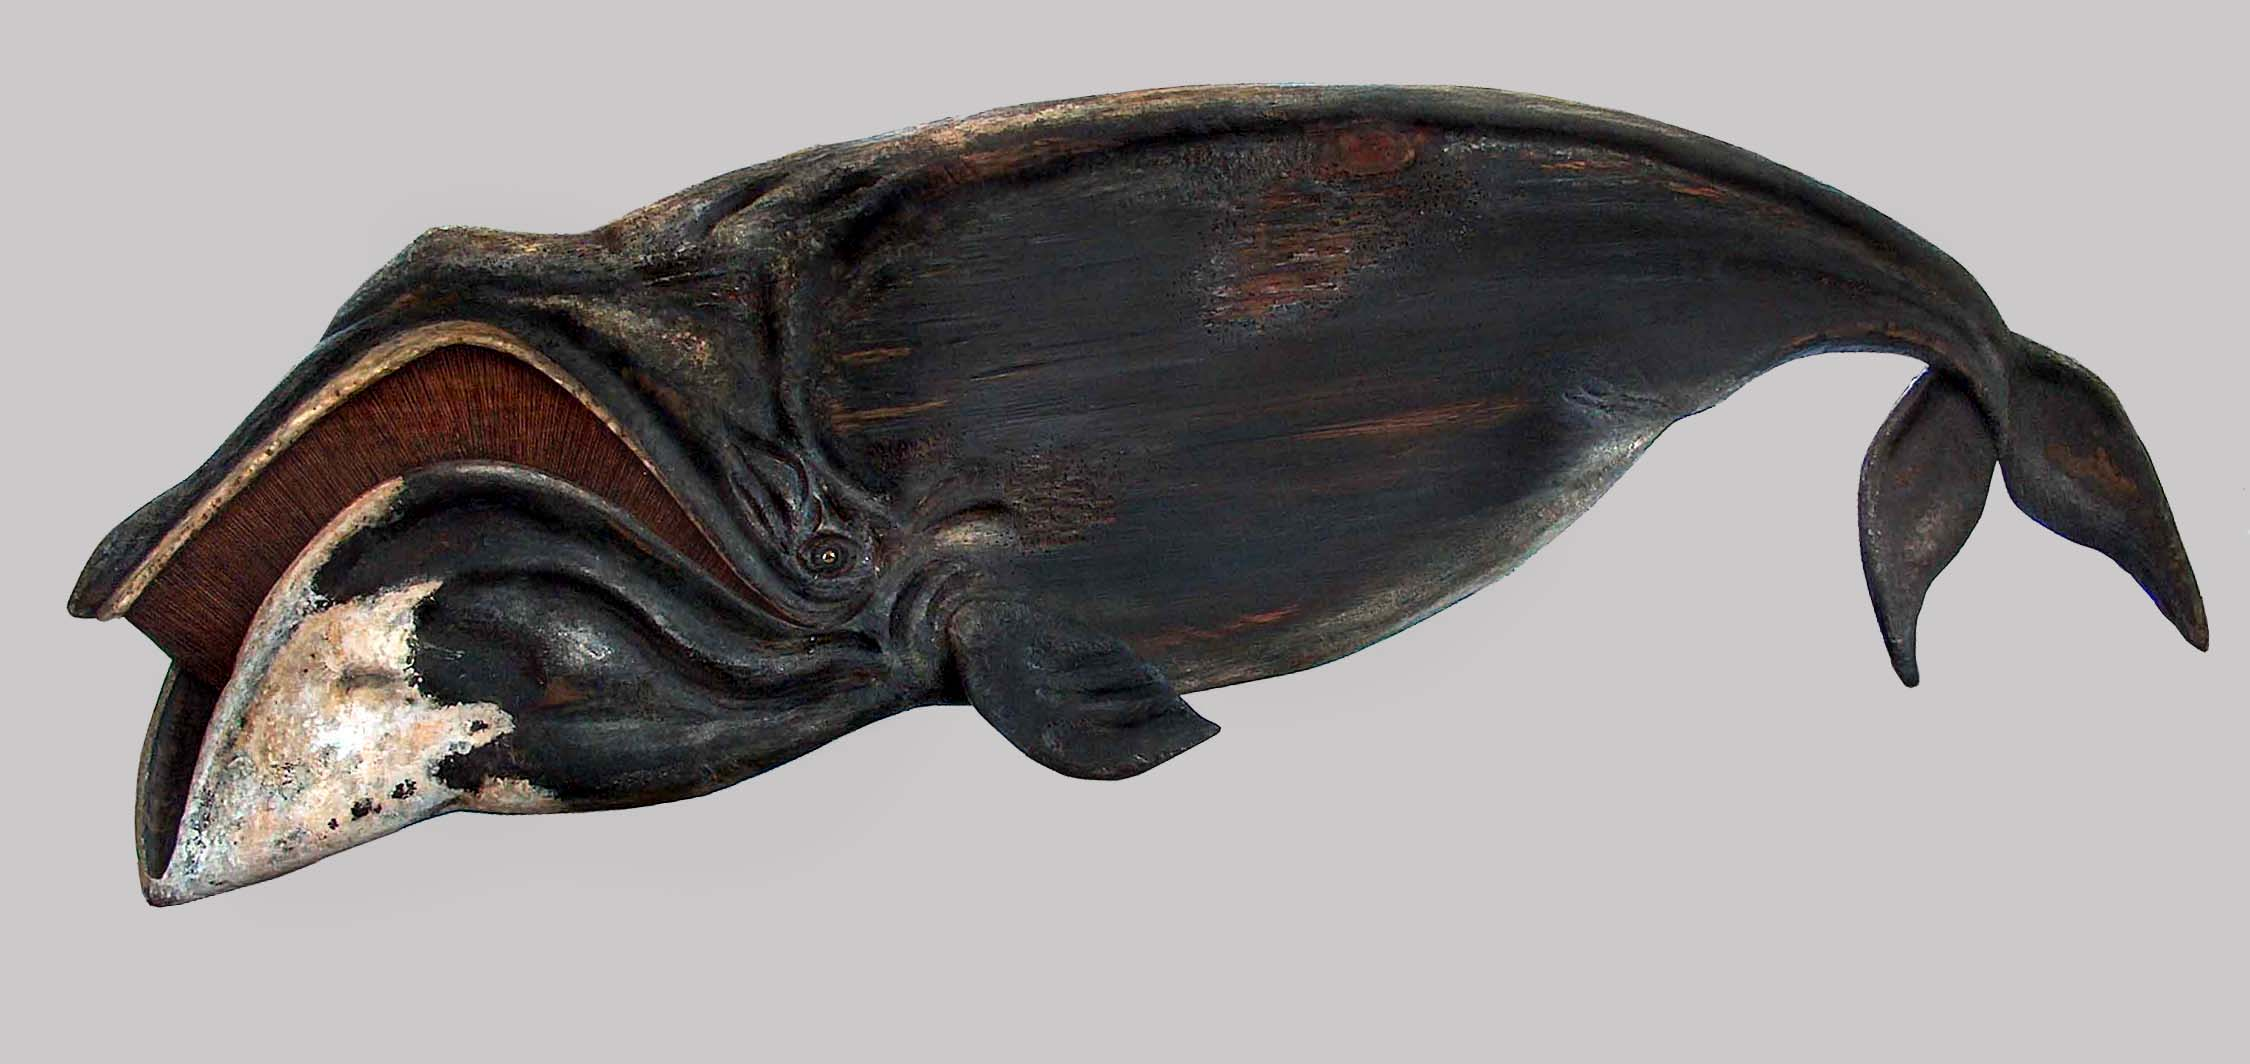 The mouth of the Bowhead Whale is shaped as an archer's bow